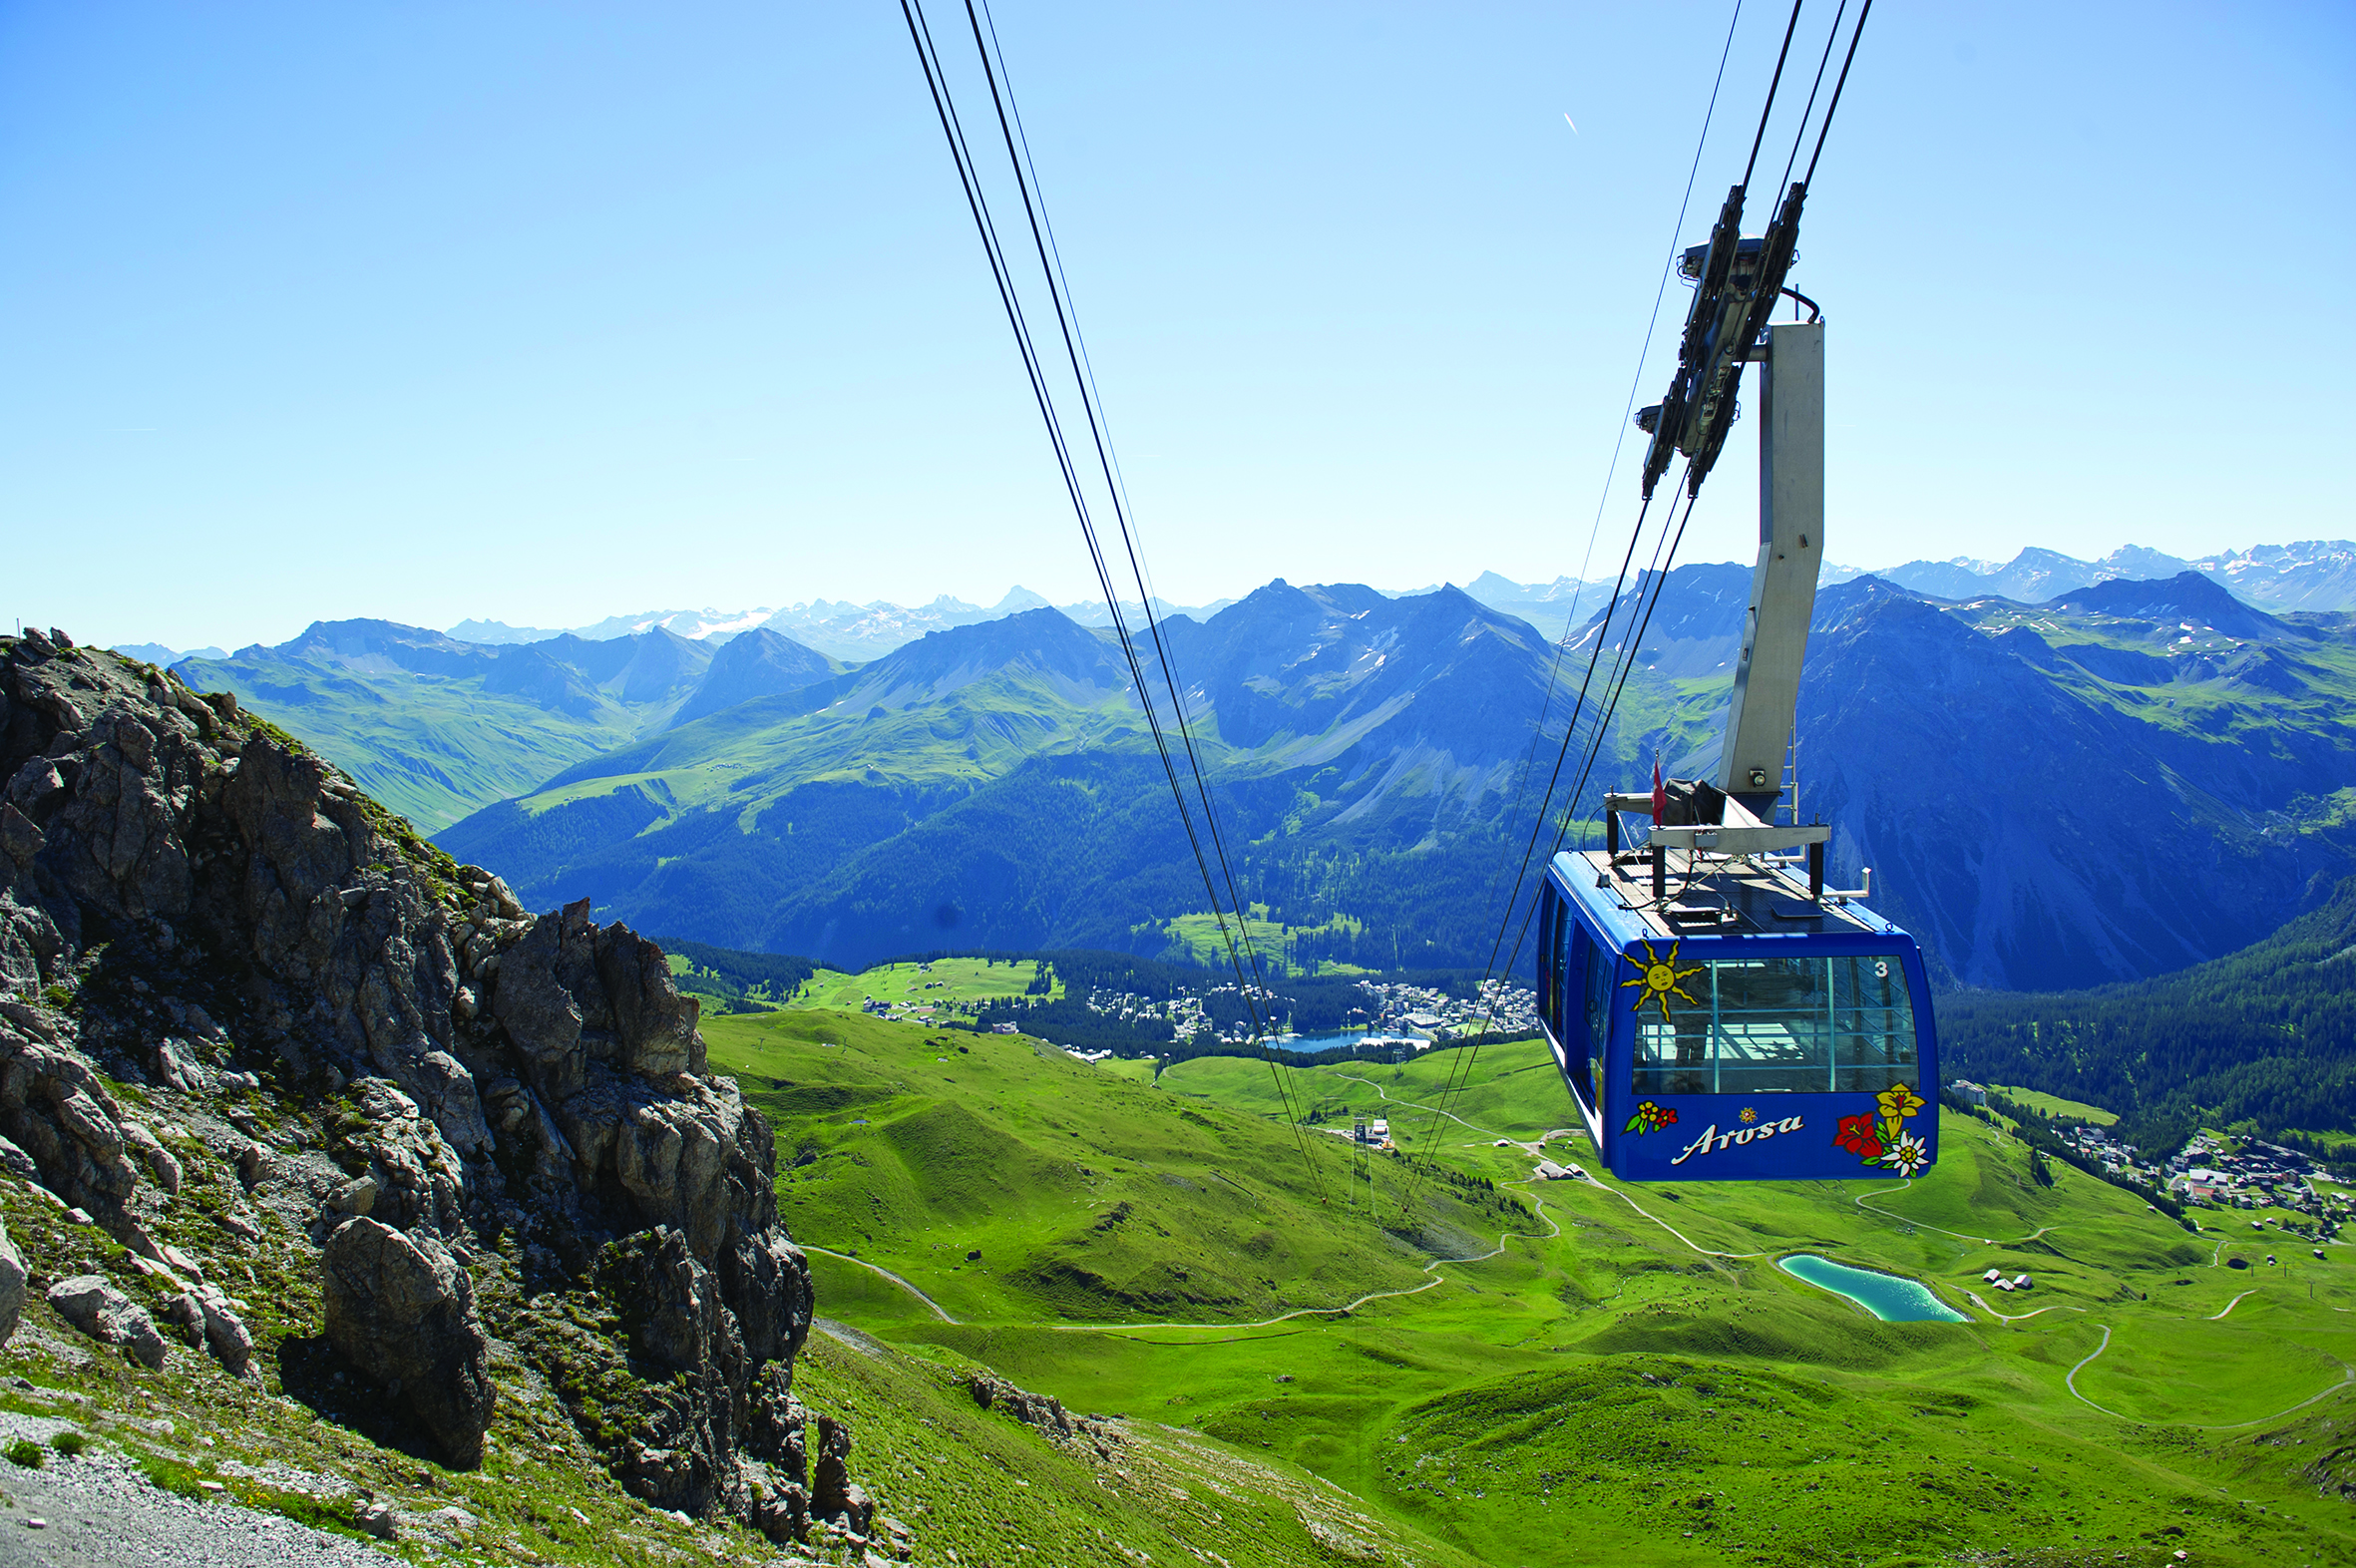 Arosa Village - Journey into the mountains of eastern Switzerland for a holiday full of extraordinary alpine views and walking.Walking Grade: Grade 6 or Grade 7